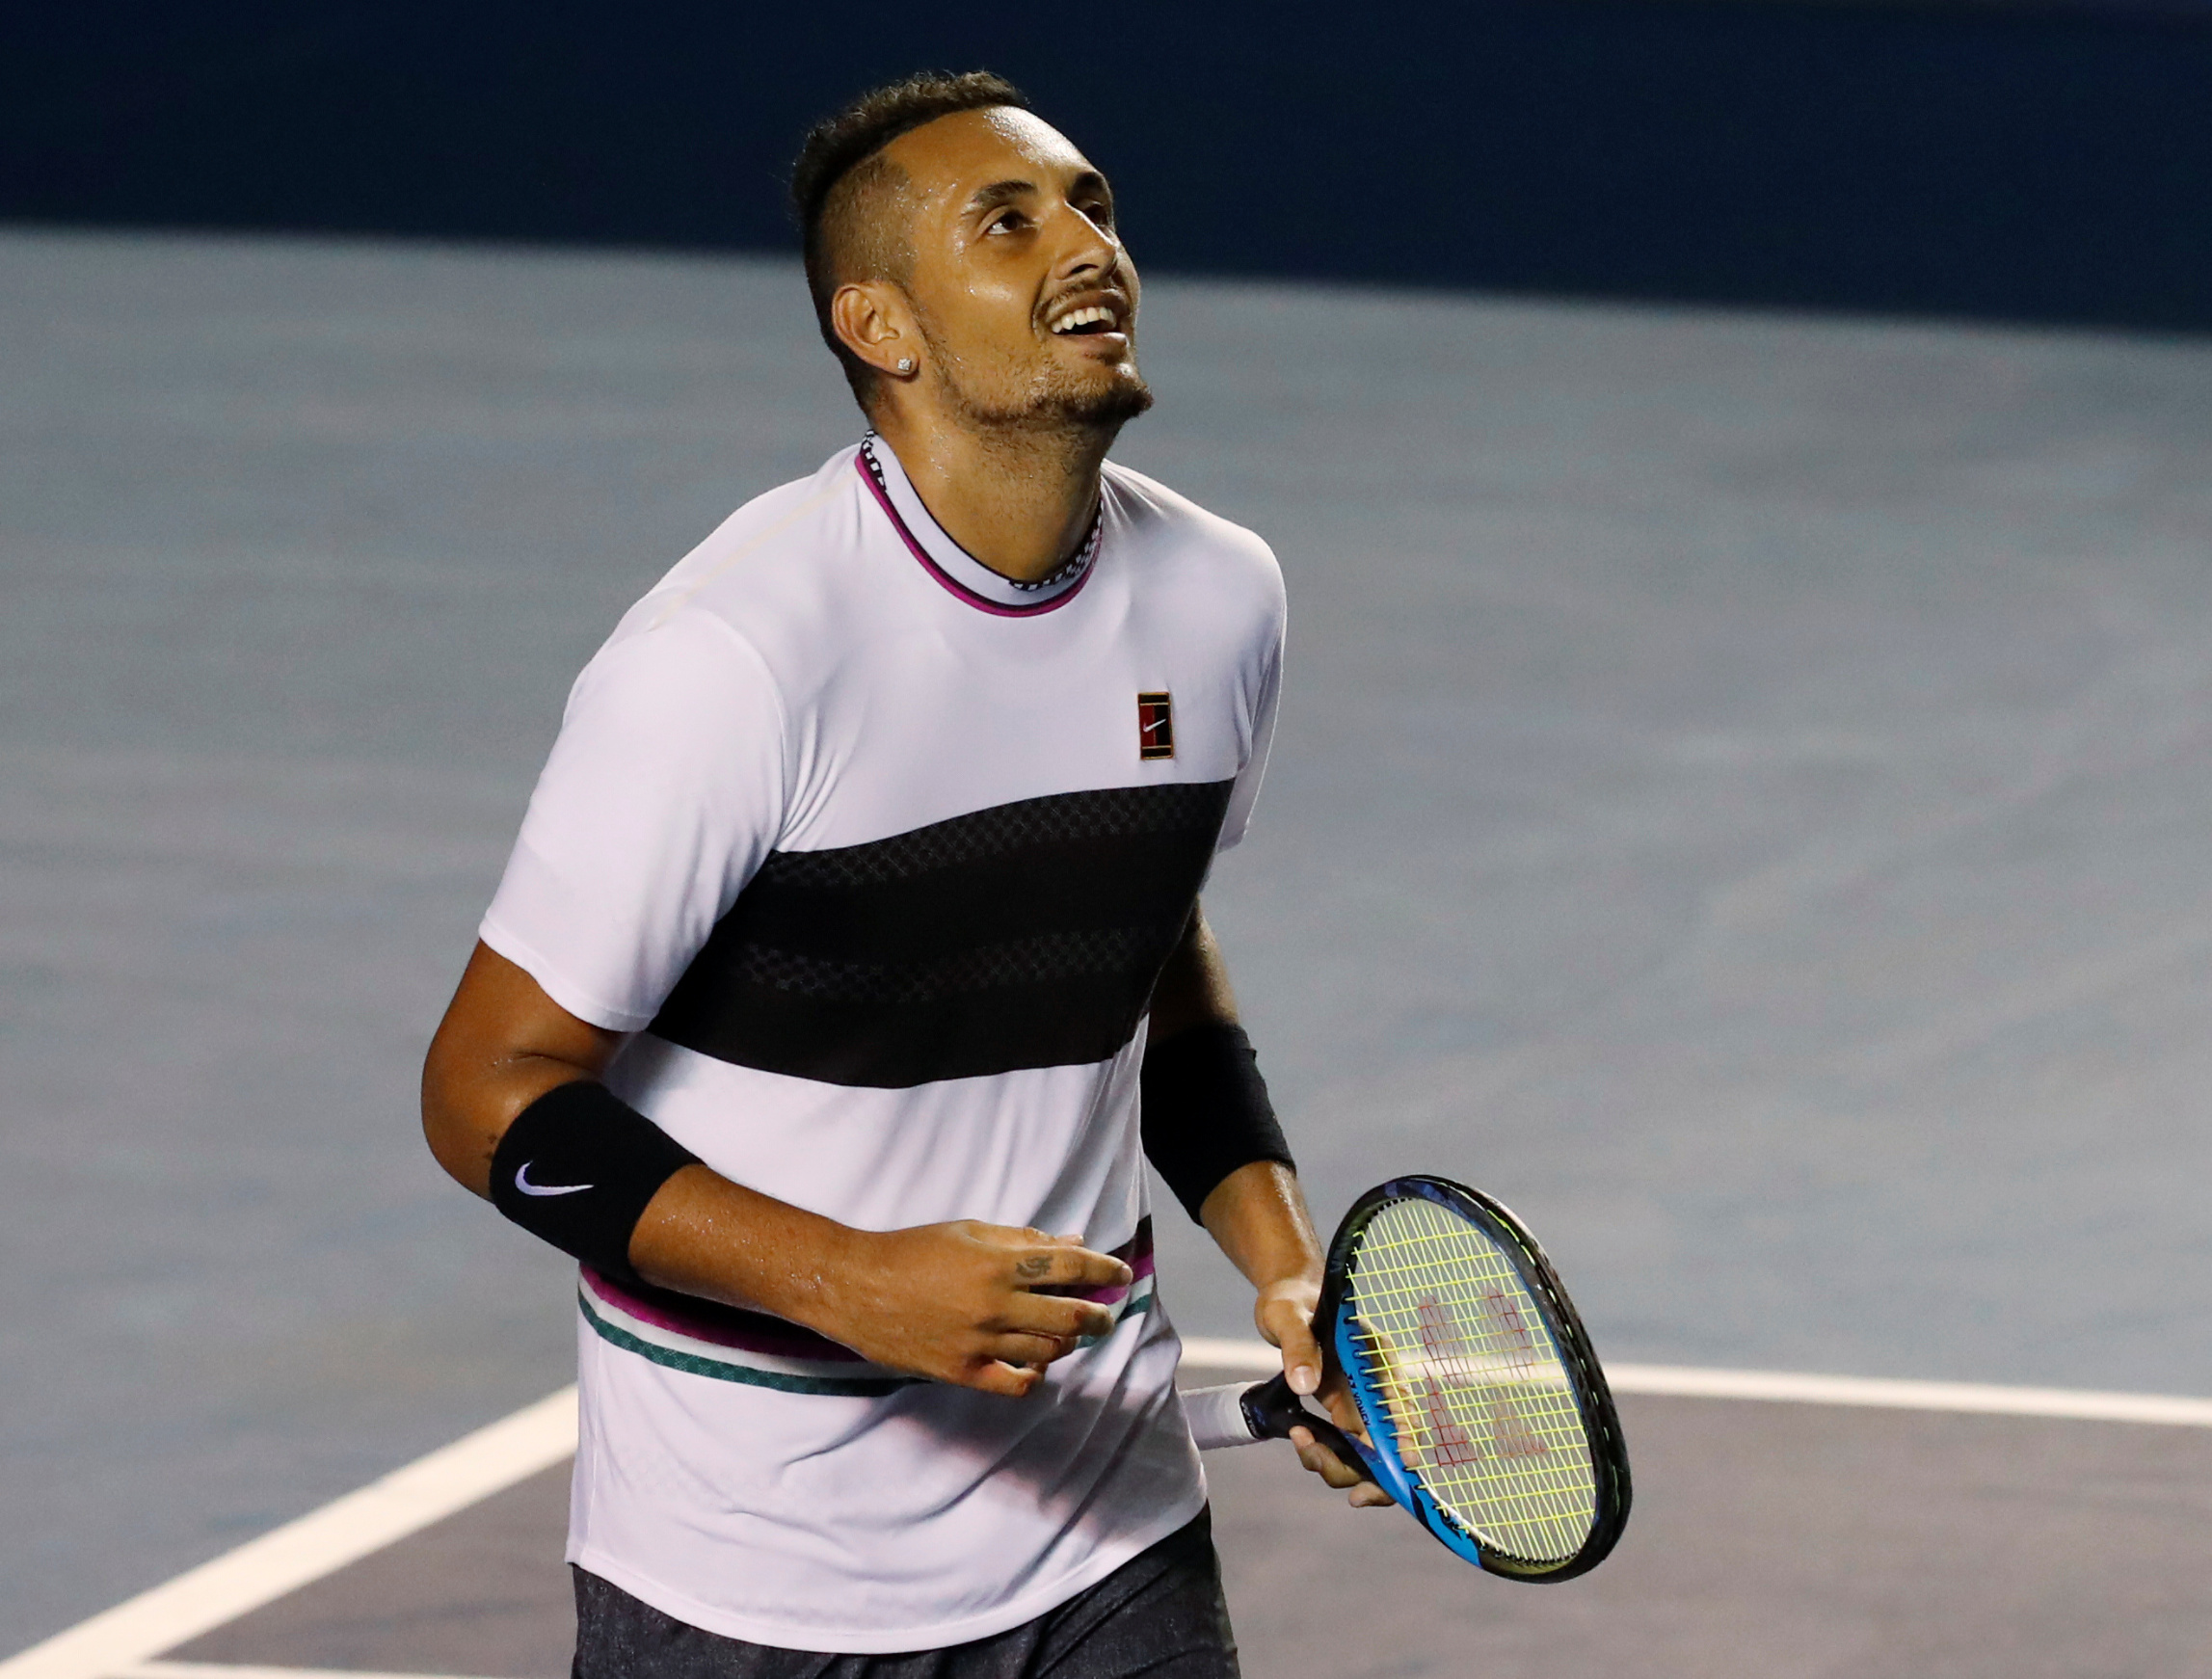 Tennis - ATP 500 - Acapulco Open, Acapulco, Mexico - March 2, 2019    Australias Nick Kyrgios celebrates winning his semi final match against John Isner of the U.S.    REUTERS/Henry Romero - RC1C2F7B4120